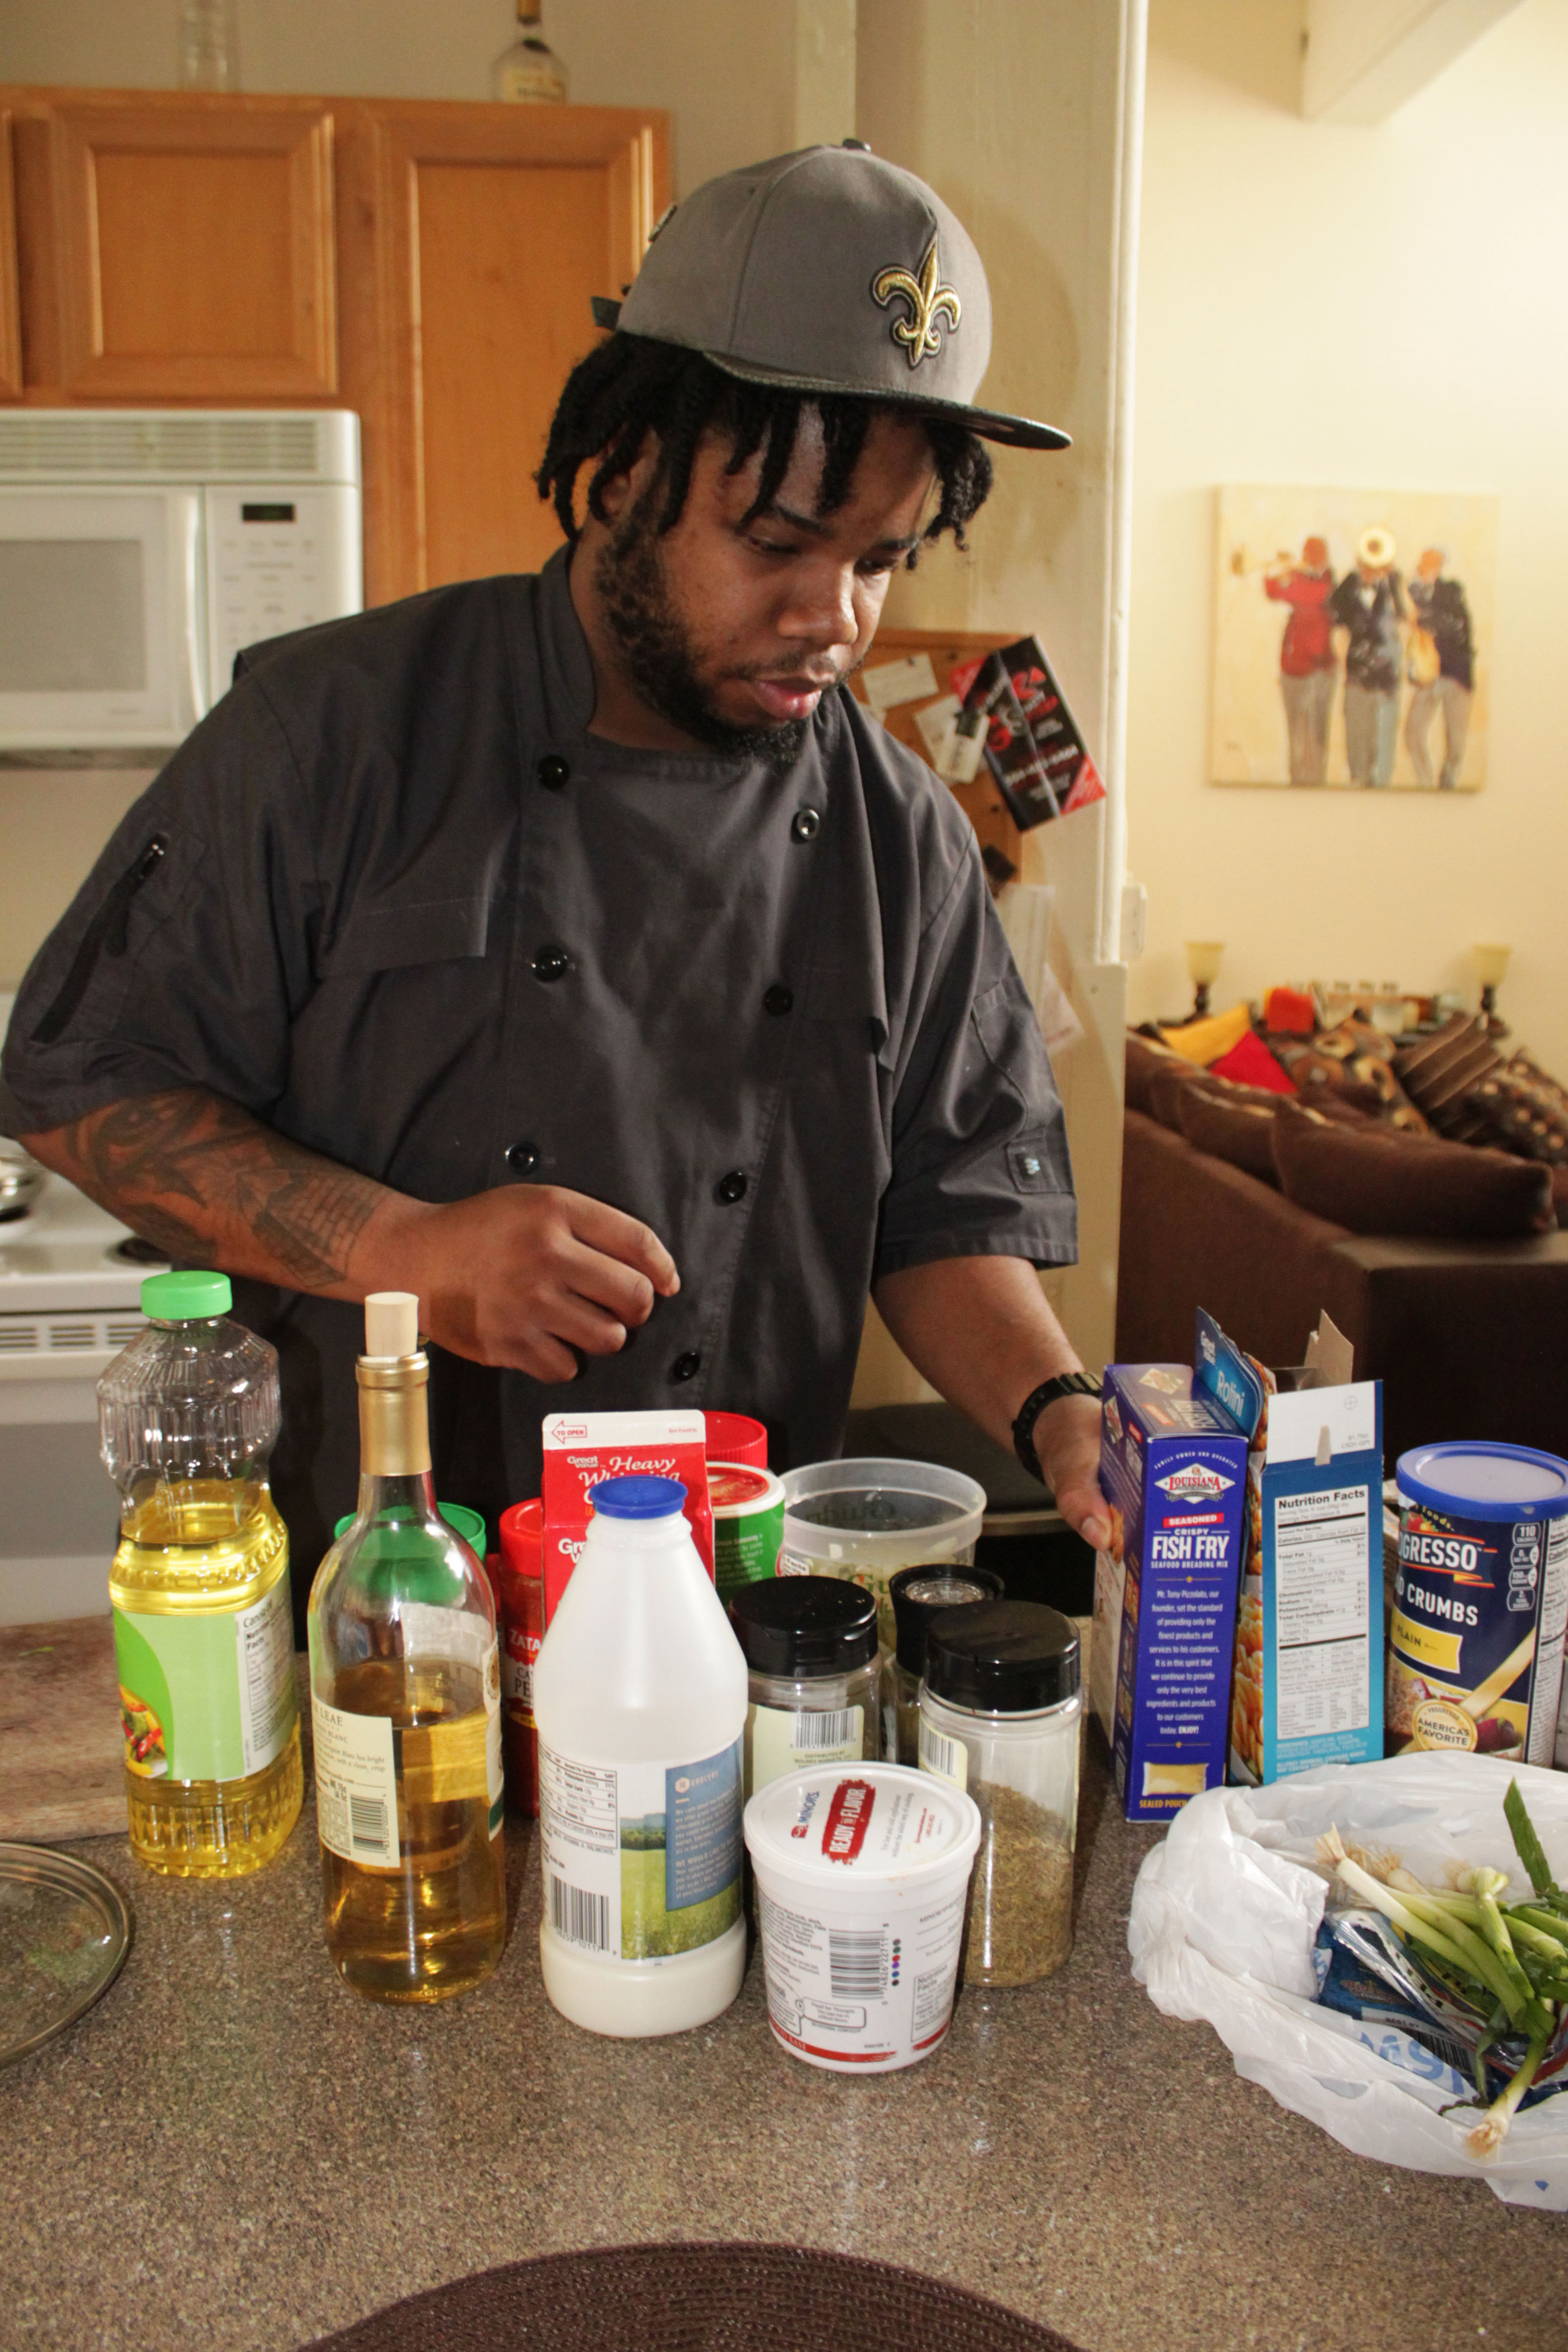 The Royal Family of Black Chefs in New Orleans